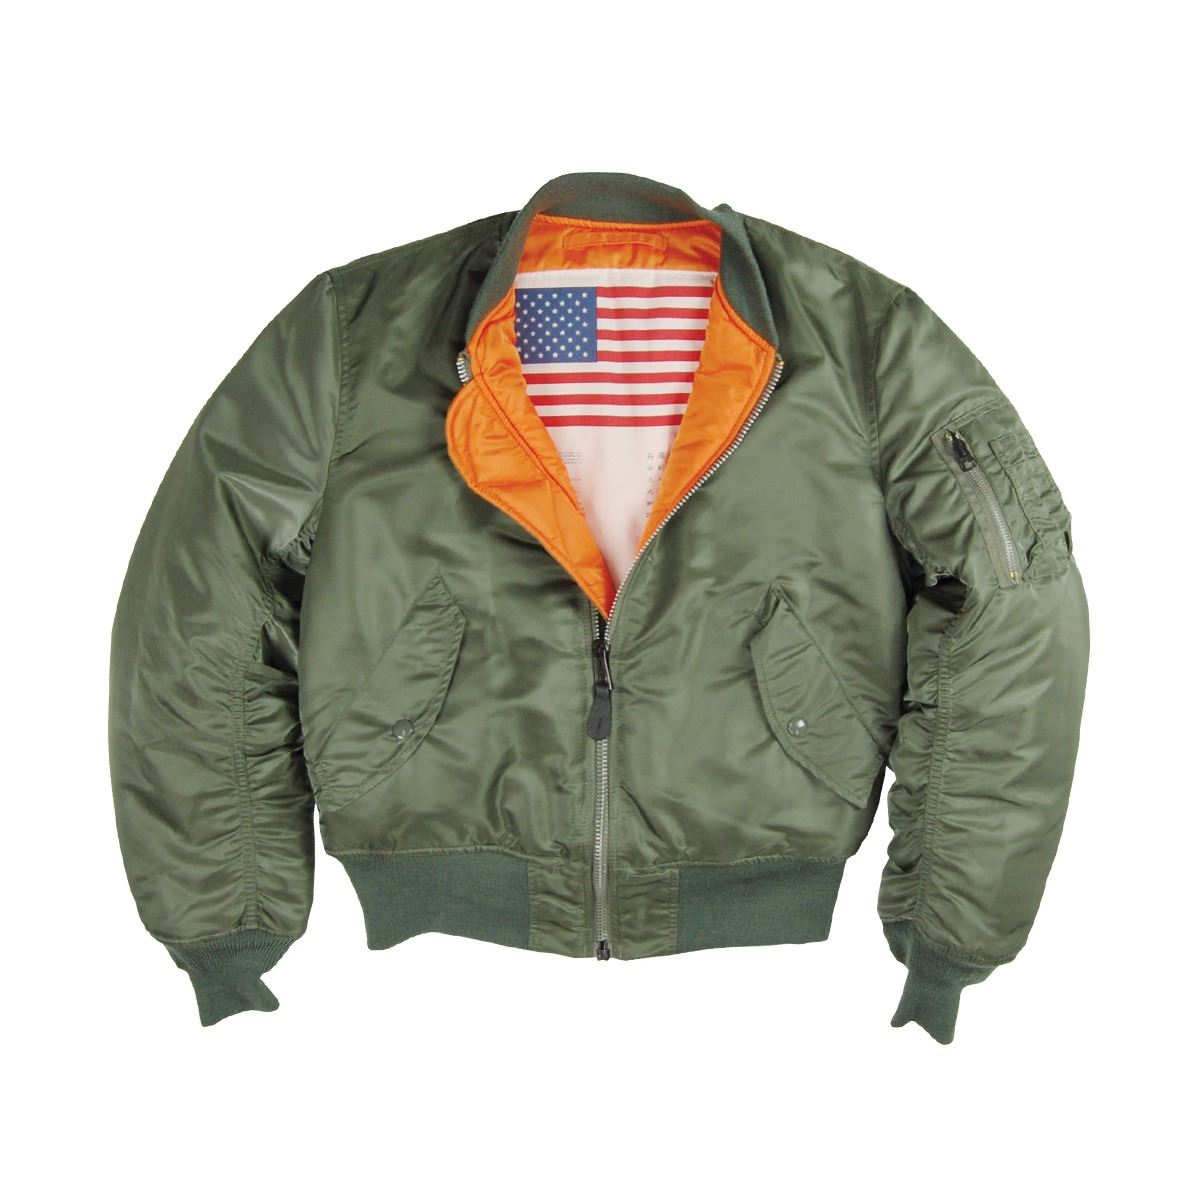 Fine Jacket Inc. Ma-1 Blood Chit | Alpha Industries